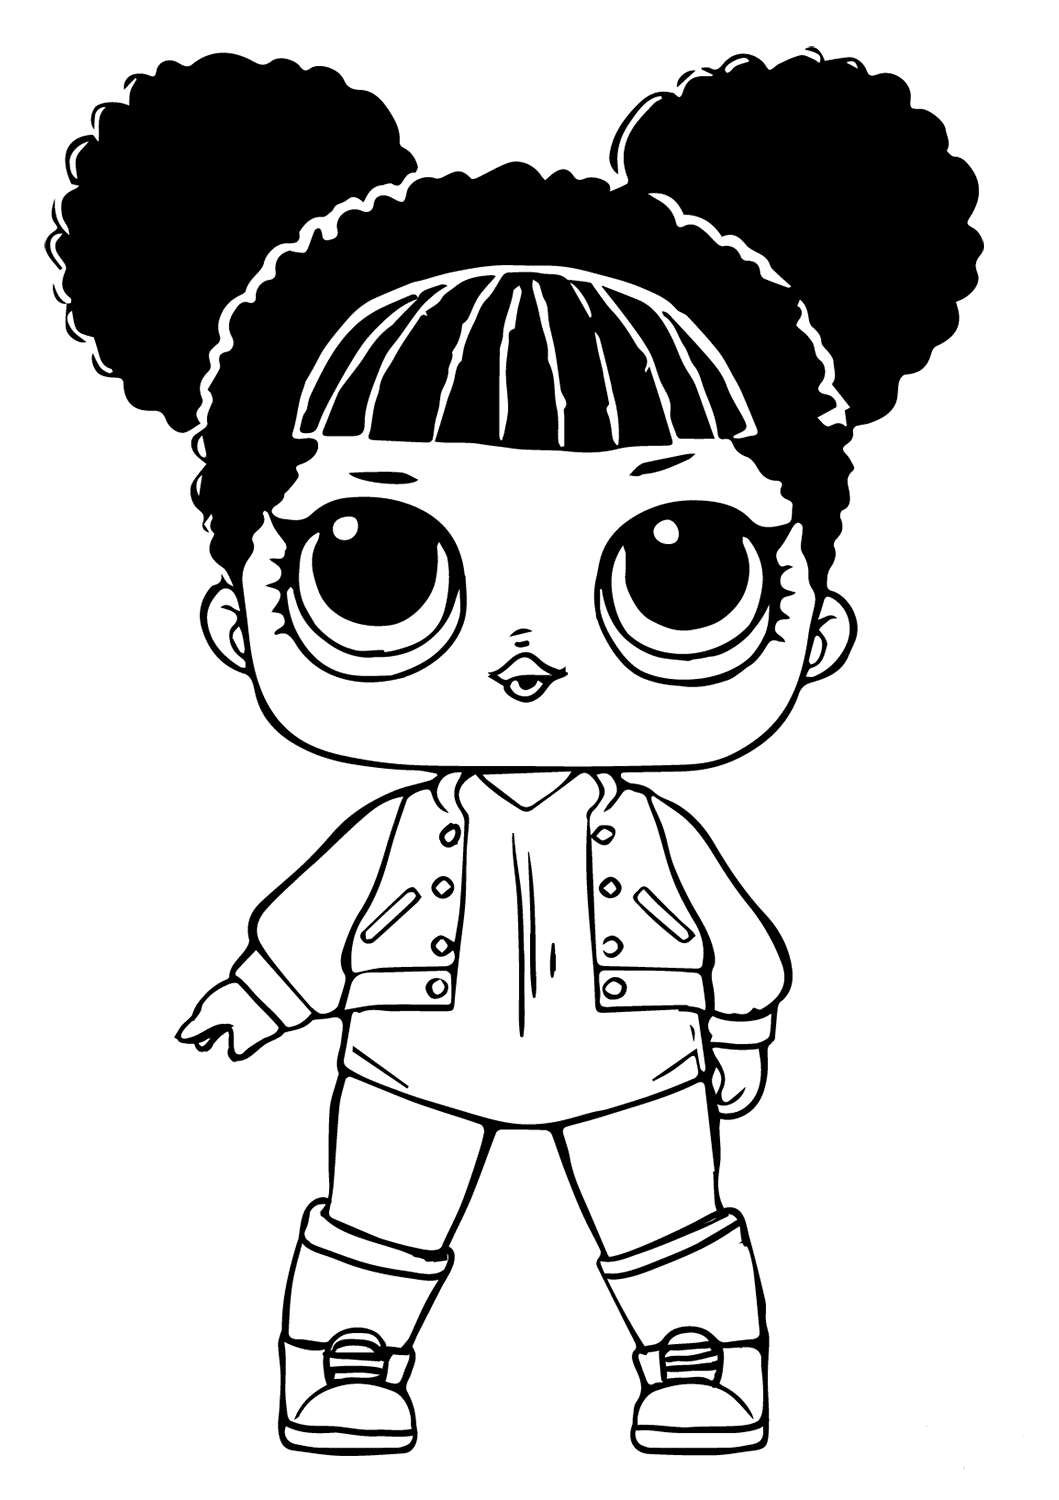 coloring dolls lol surprise dolls coloring pages print them for free dolls coloring